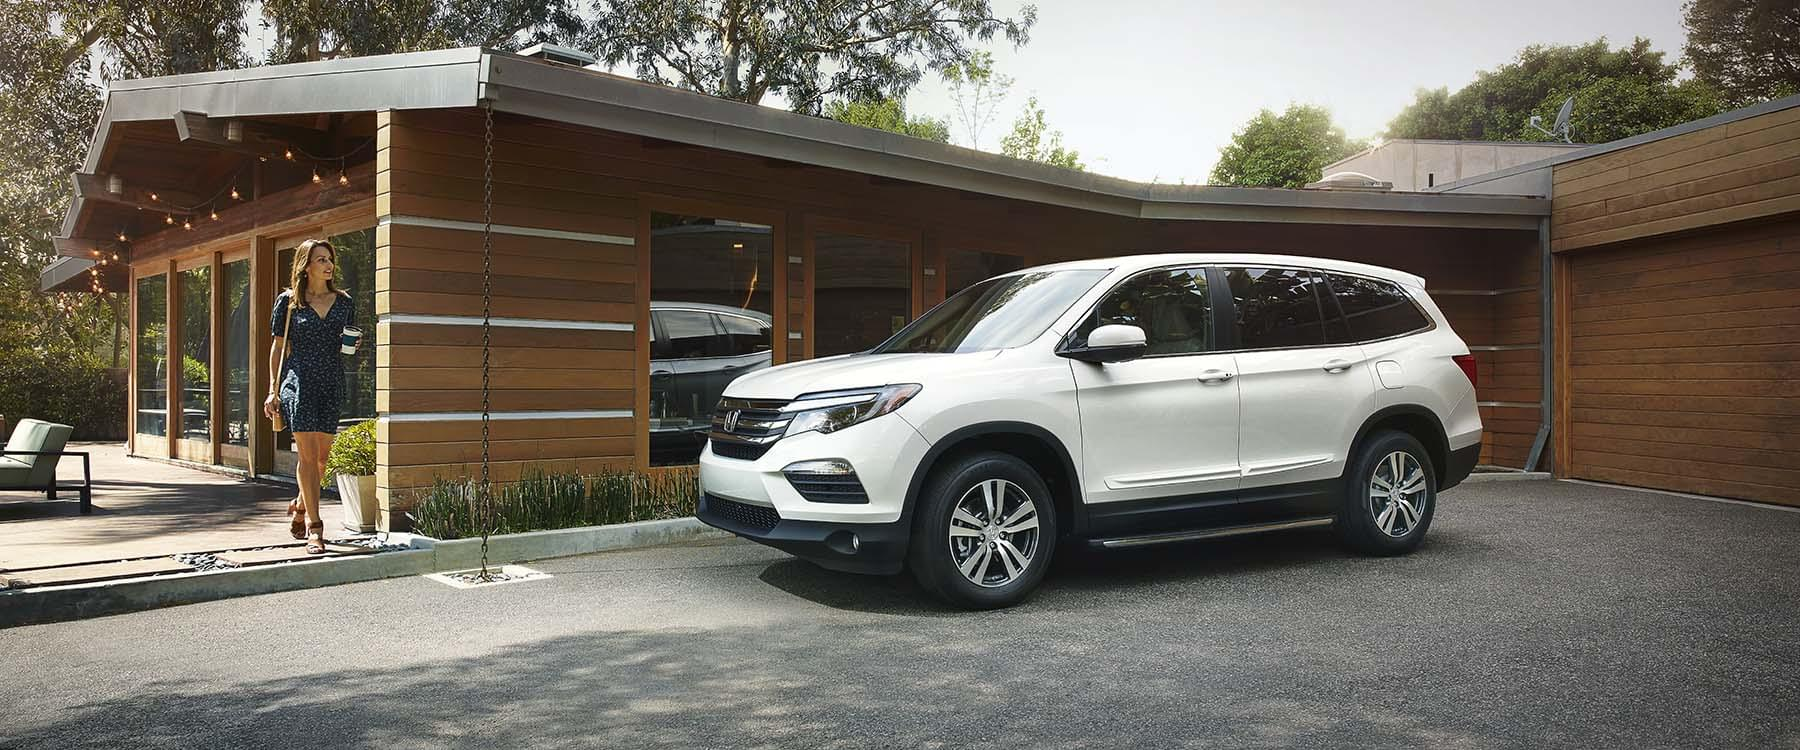 Interior features of the 2017 honda pilot for 2017 honda pilot interior